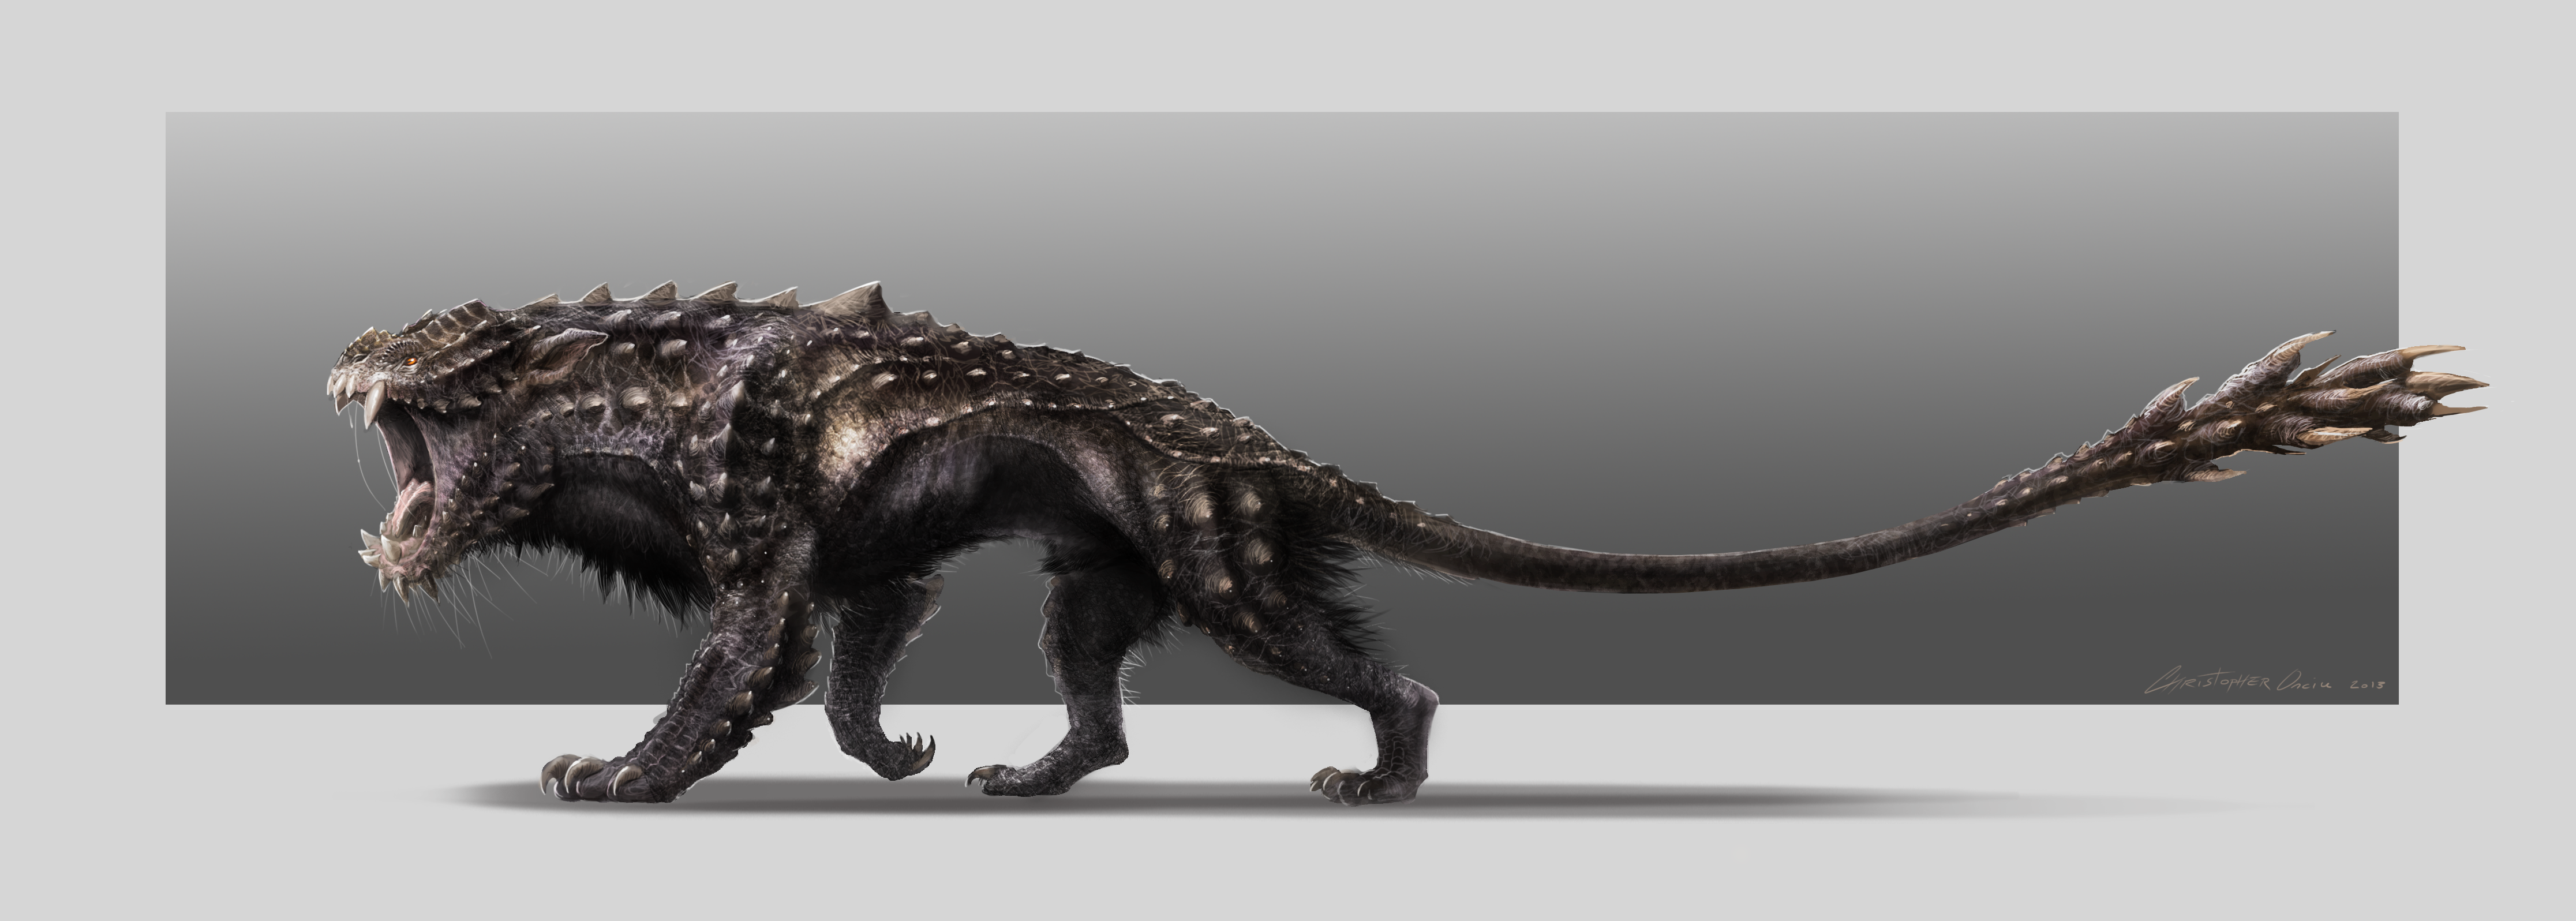 creature_design_by_cxartist-d6b9f0l.png